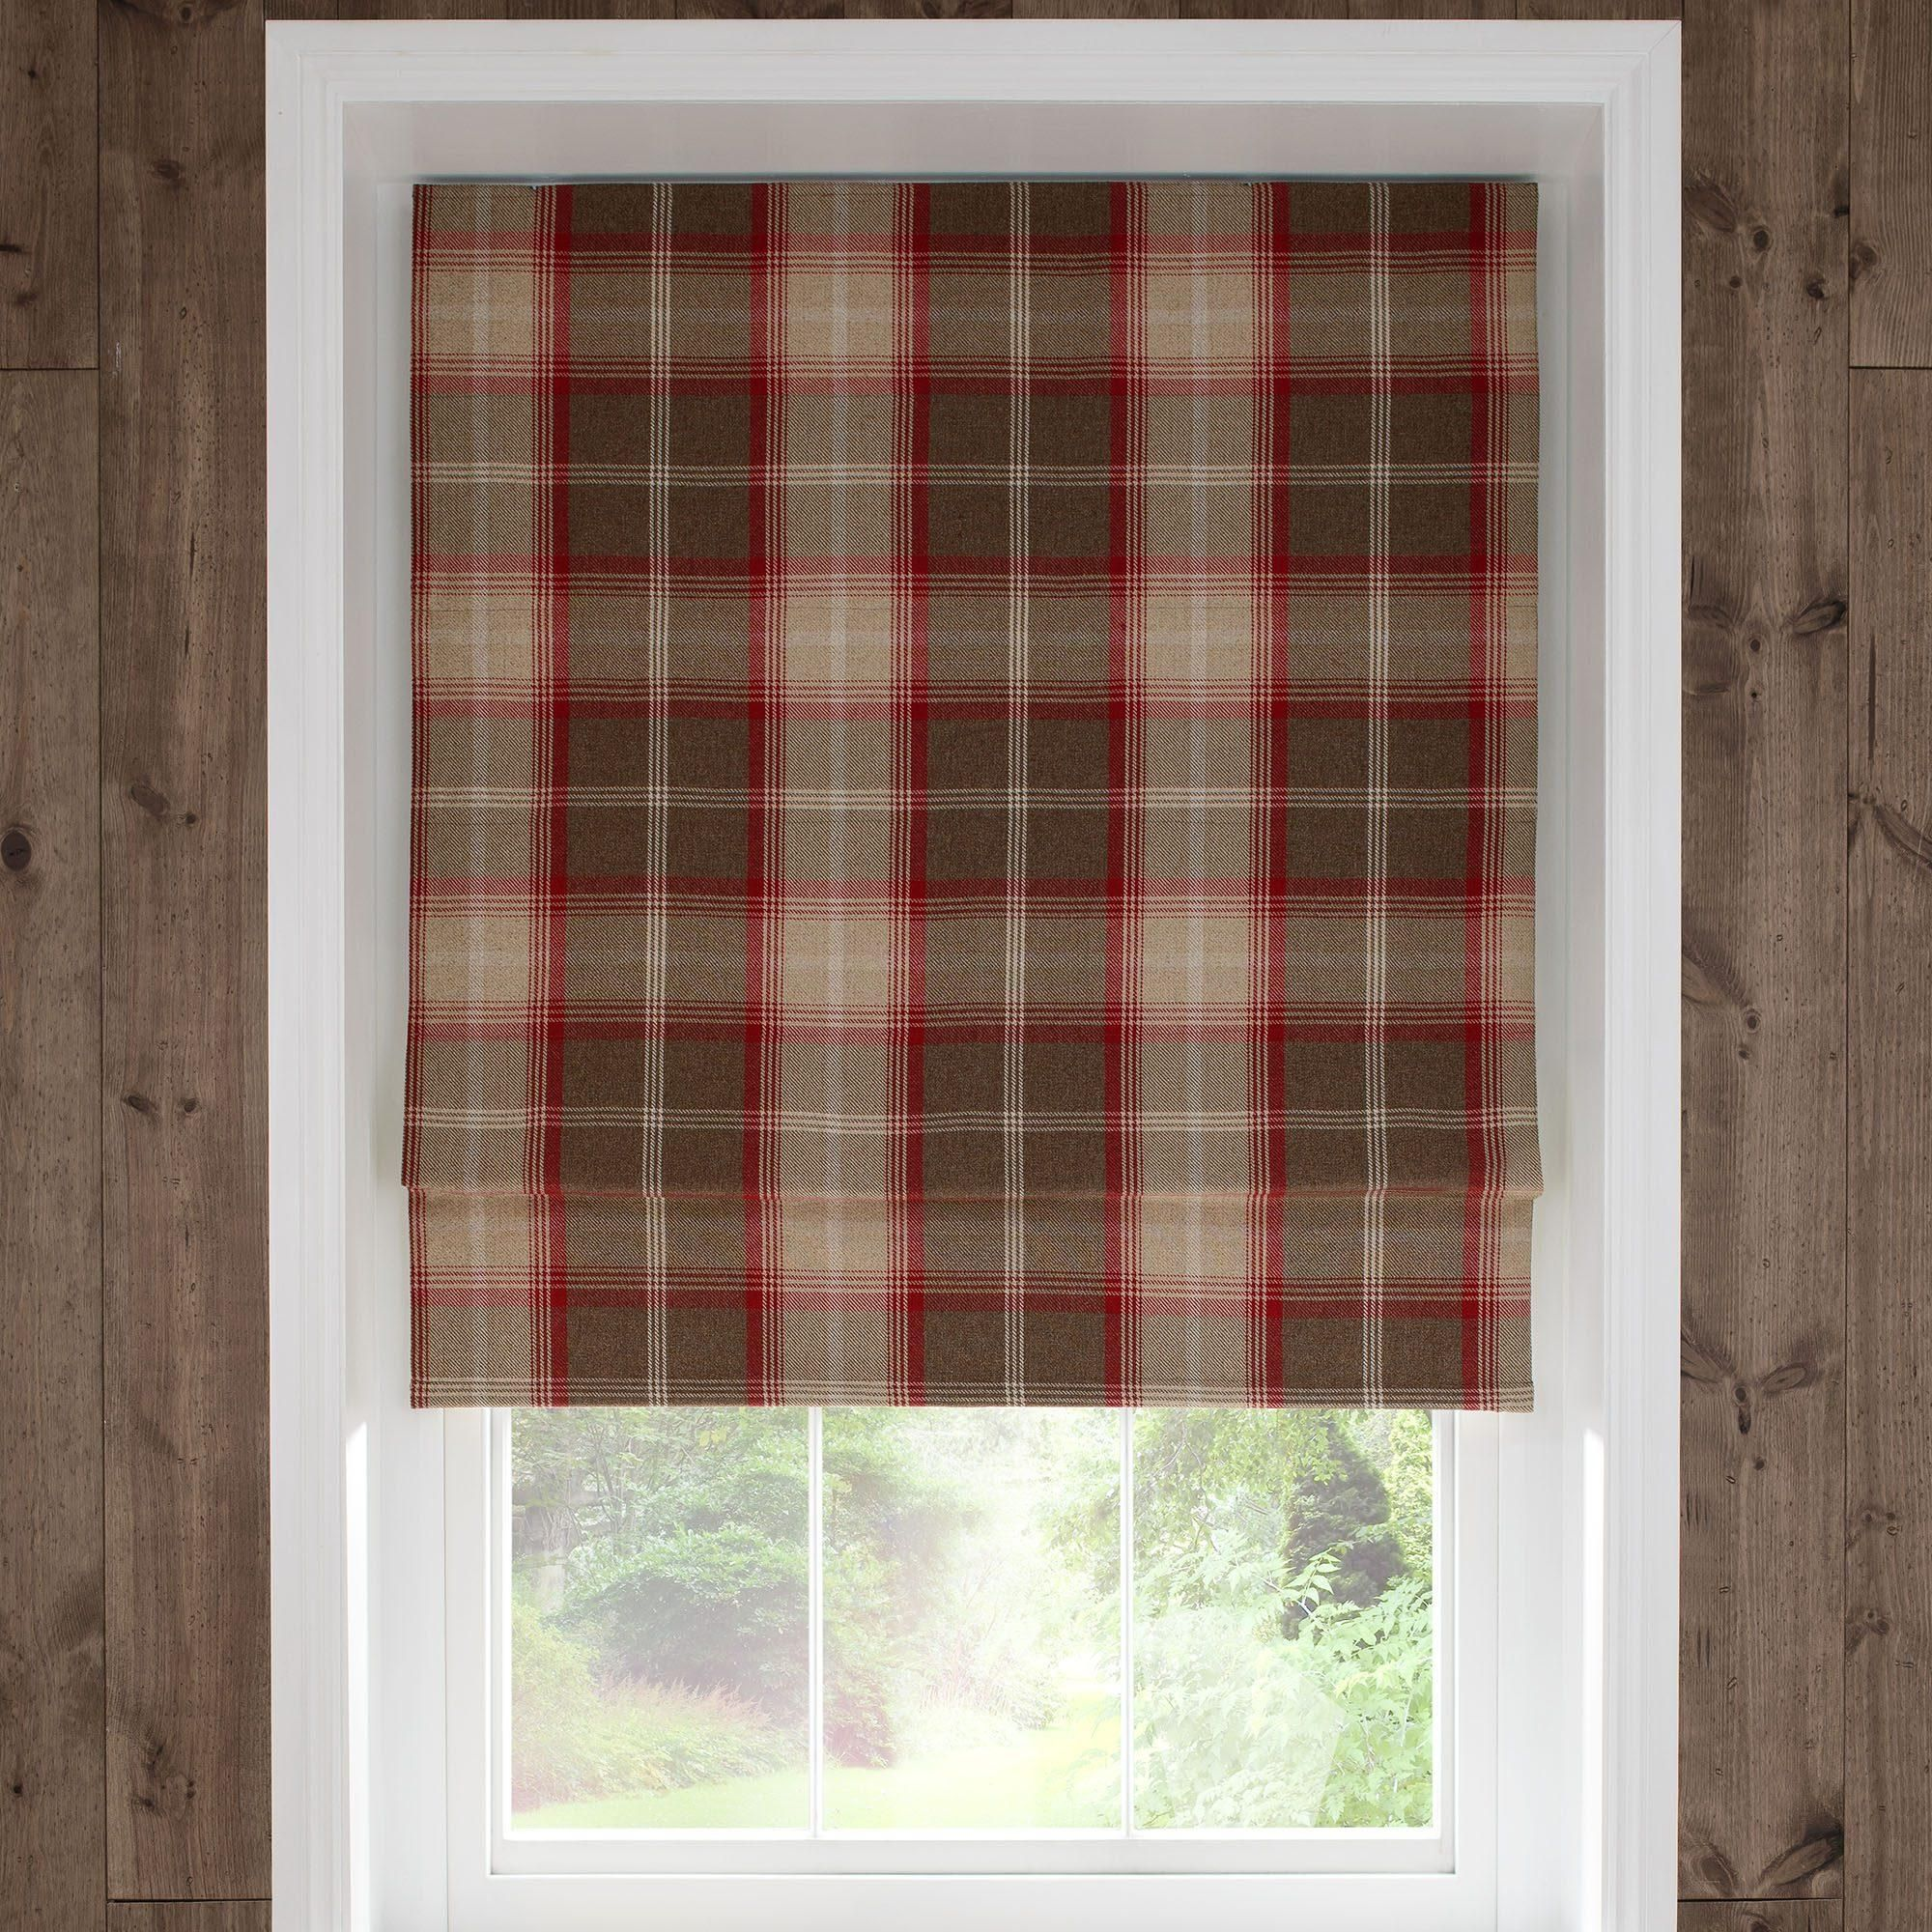 Dunelm Highland Check Red Amp Brown Blackout Roman Blind In